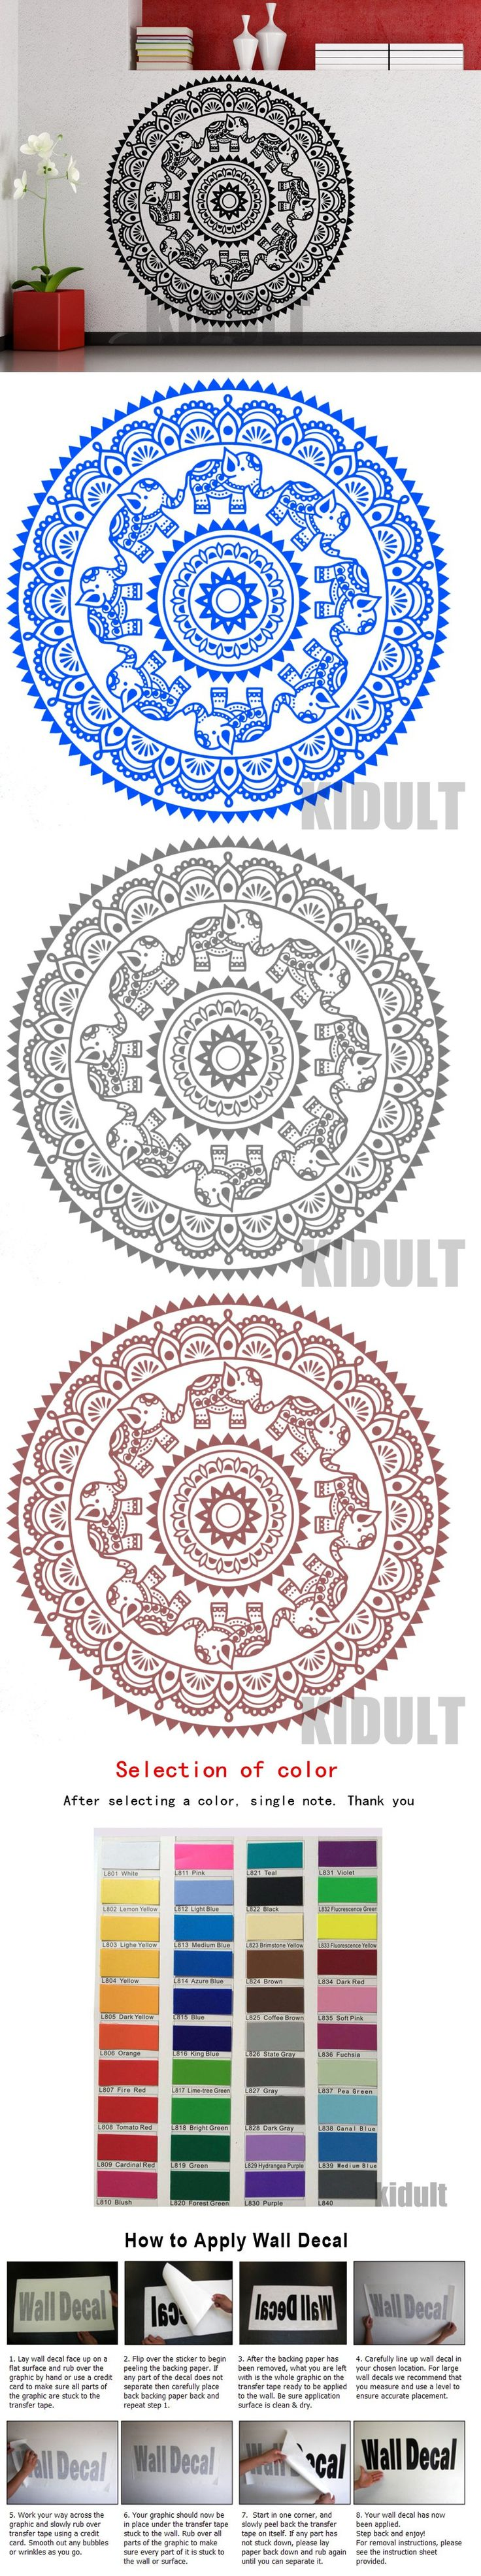 Best 25 indian yoga ideas on pinterest sanskrit words yoga for creative wall sticker mandala indian yoga lotus folded wall stickers vinyl stickers bedroom home decorative wall painting amipublicfo Image collections